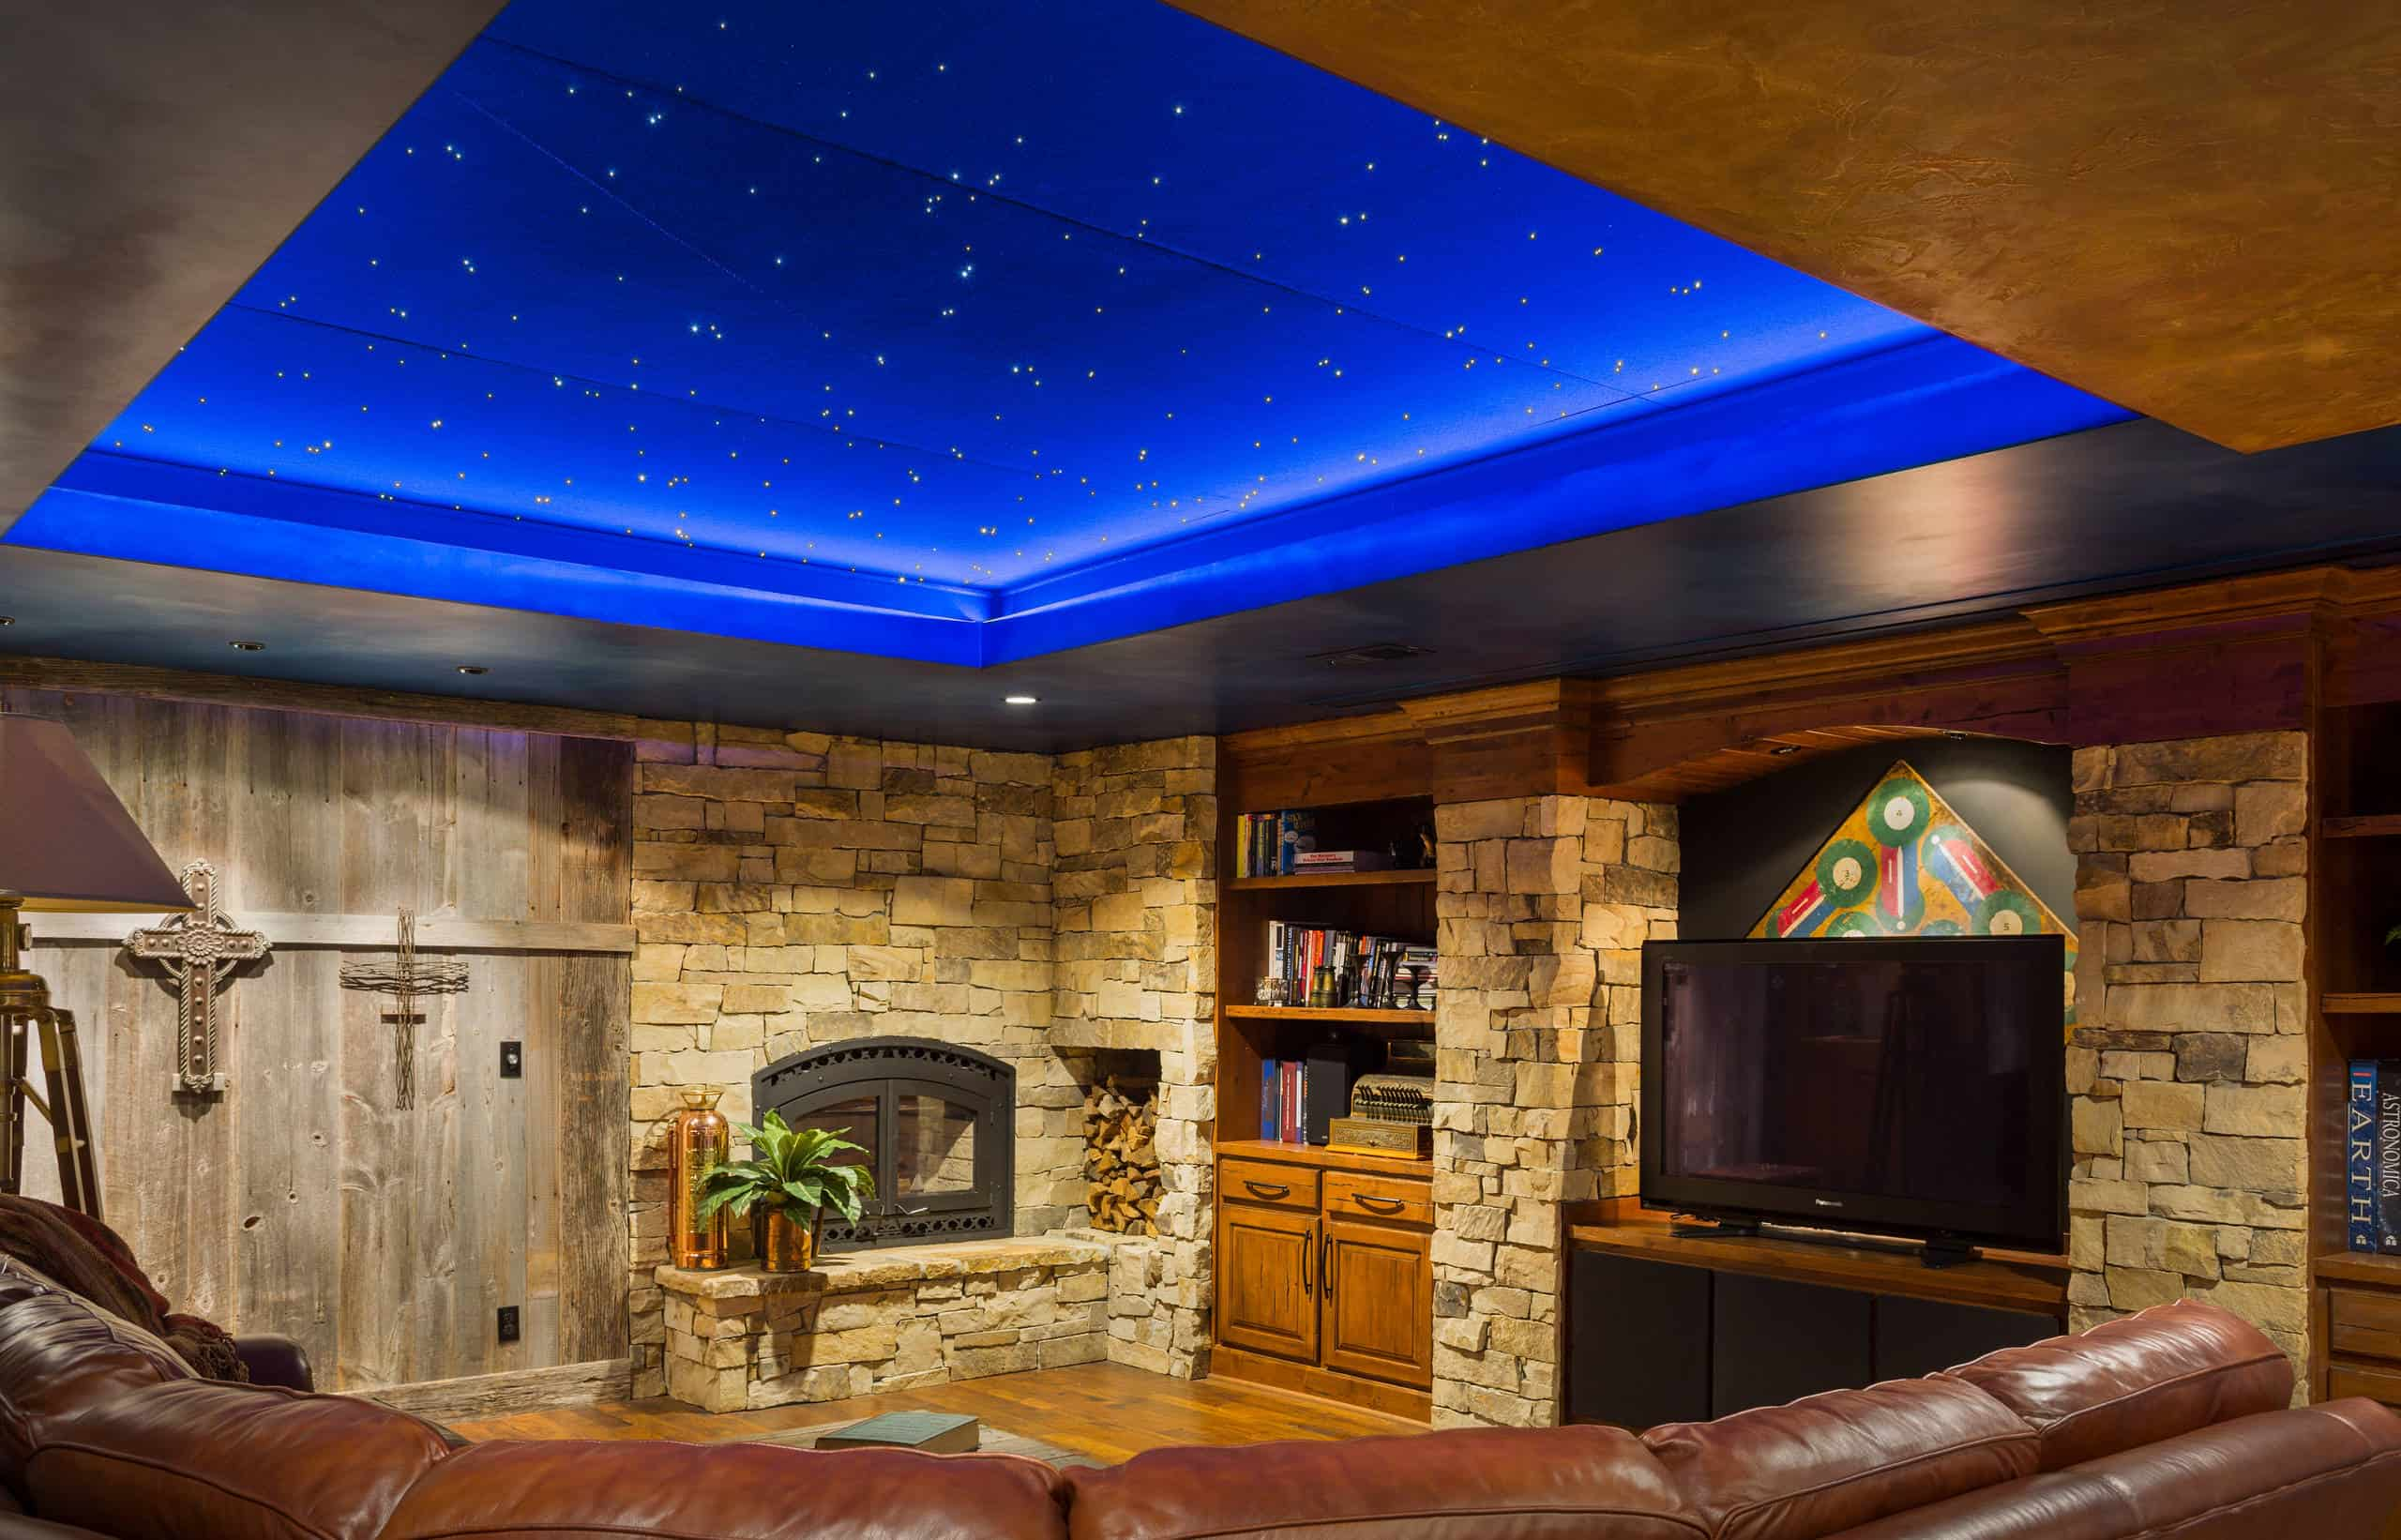 Starry Night Sky Basement Lighting